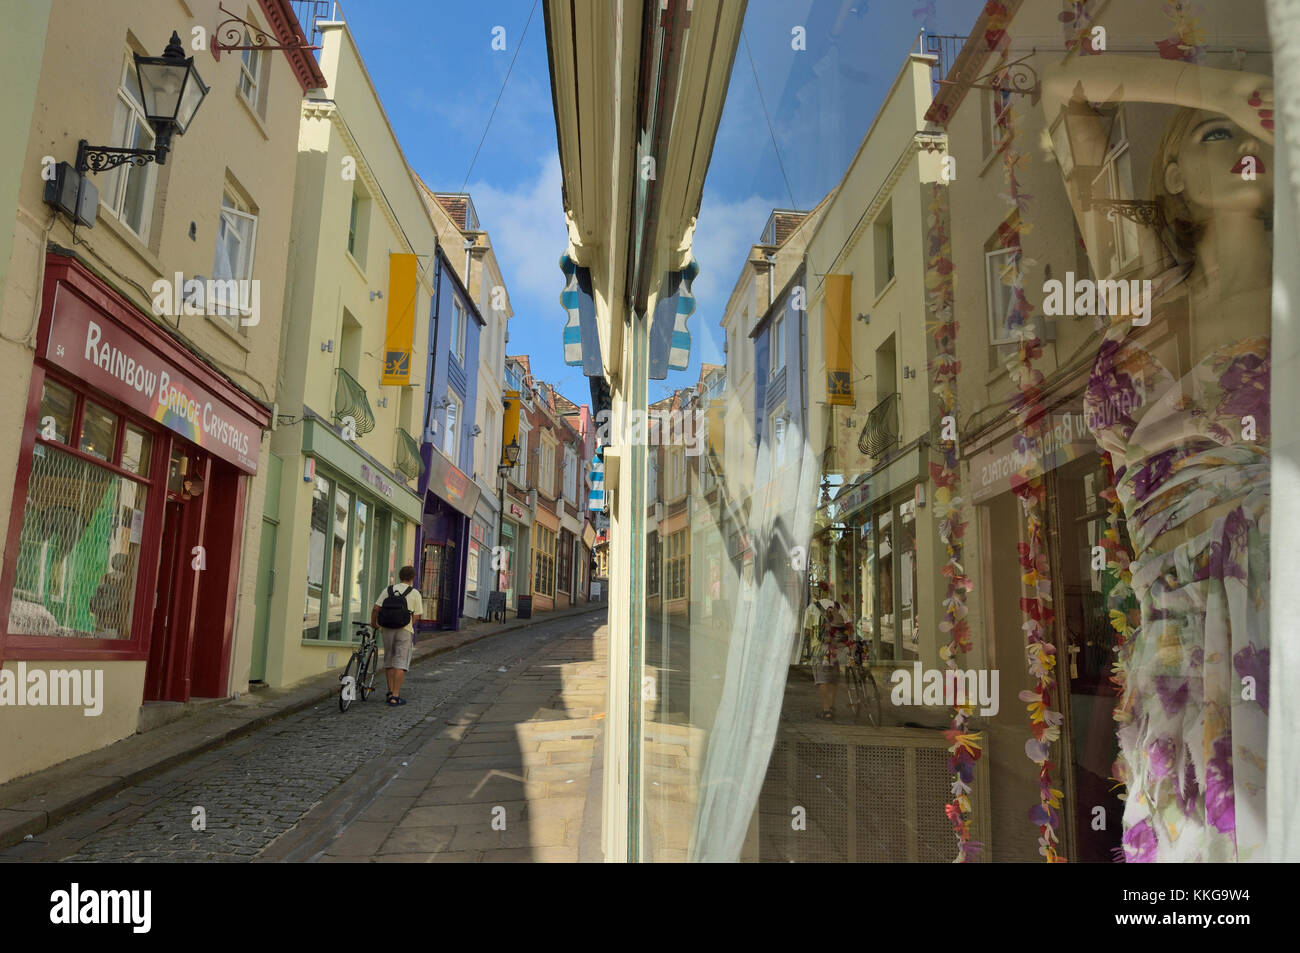 The Old High Street, Old Town, Folkestone, Kent, England, UK - Stock Image